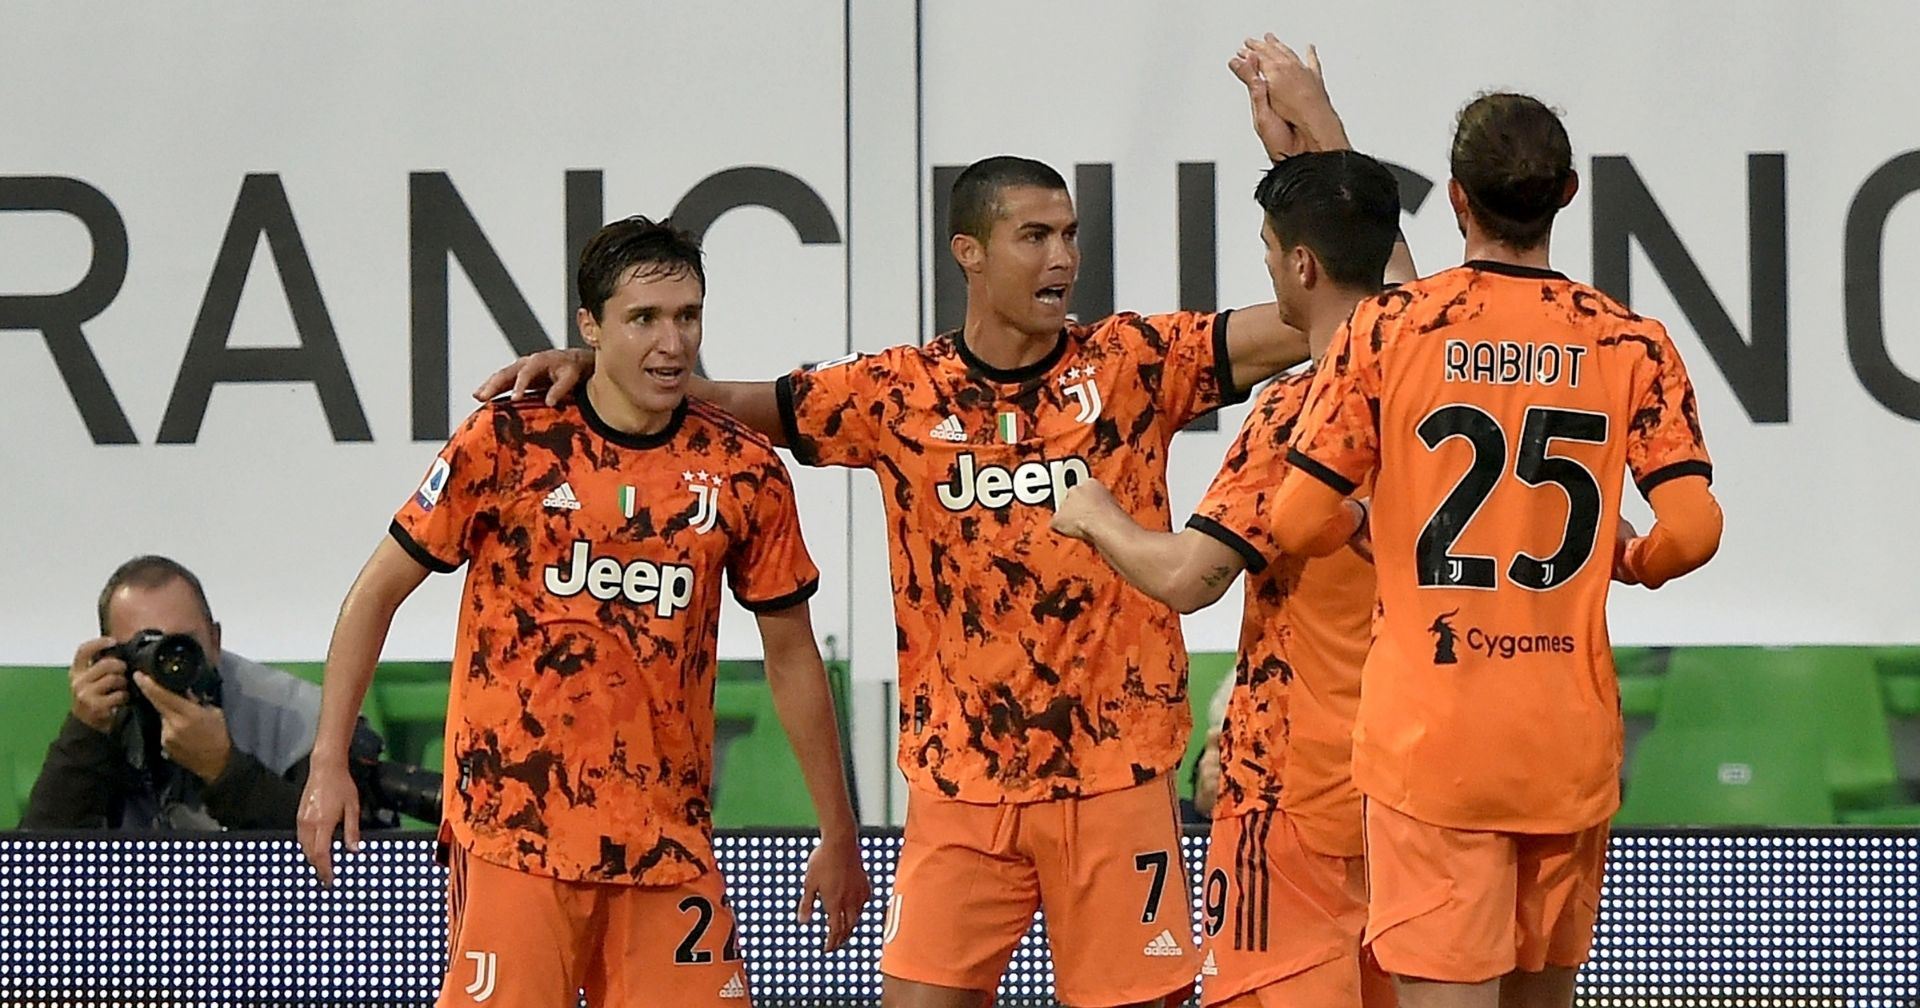 Parma vs Juventus: Preview, Betting Tips, Stats & Prediction